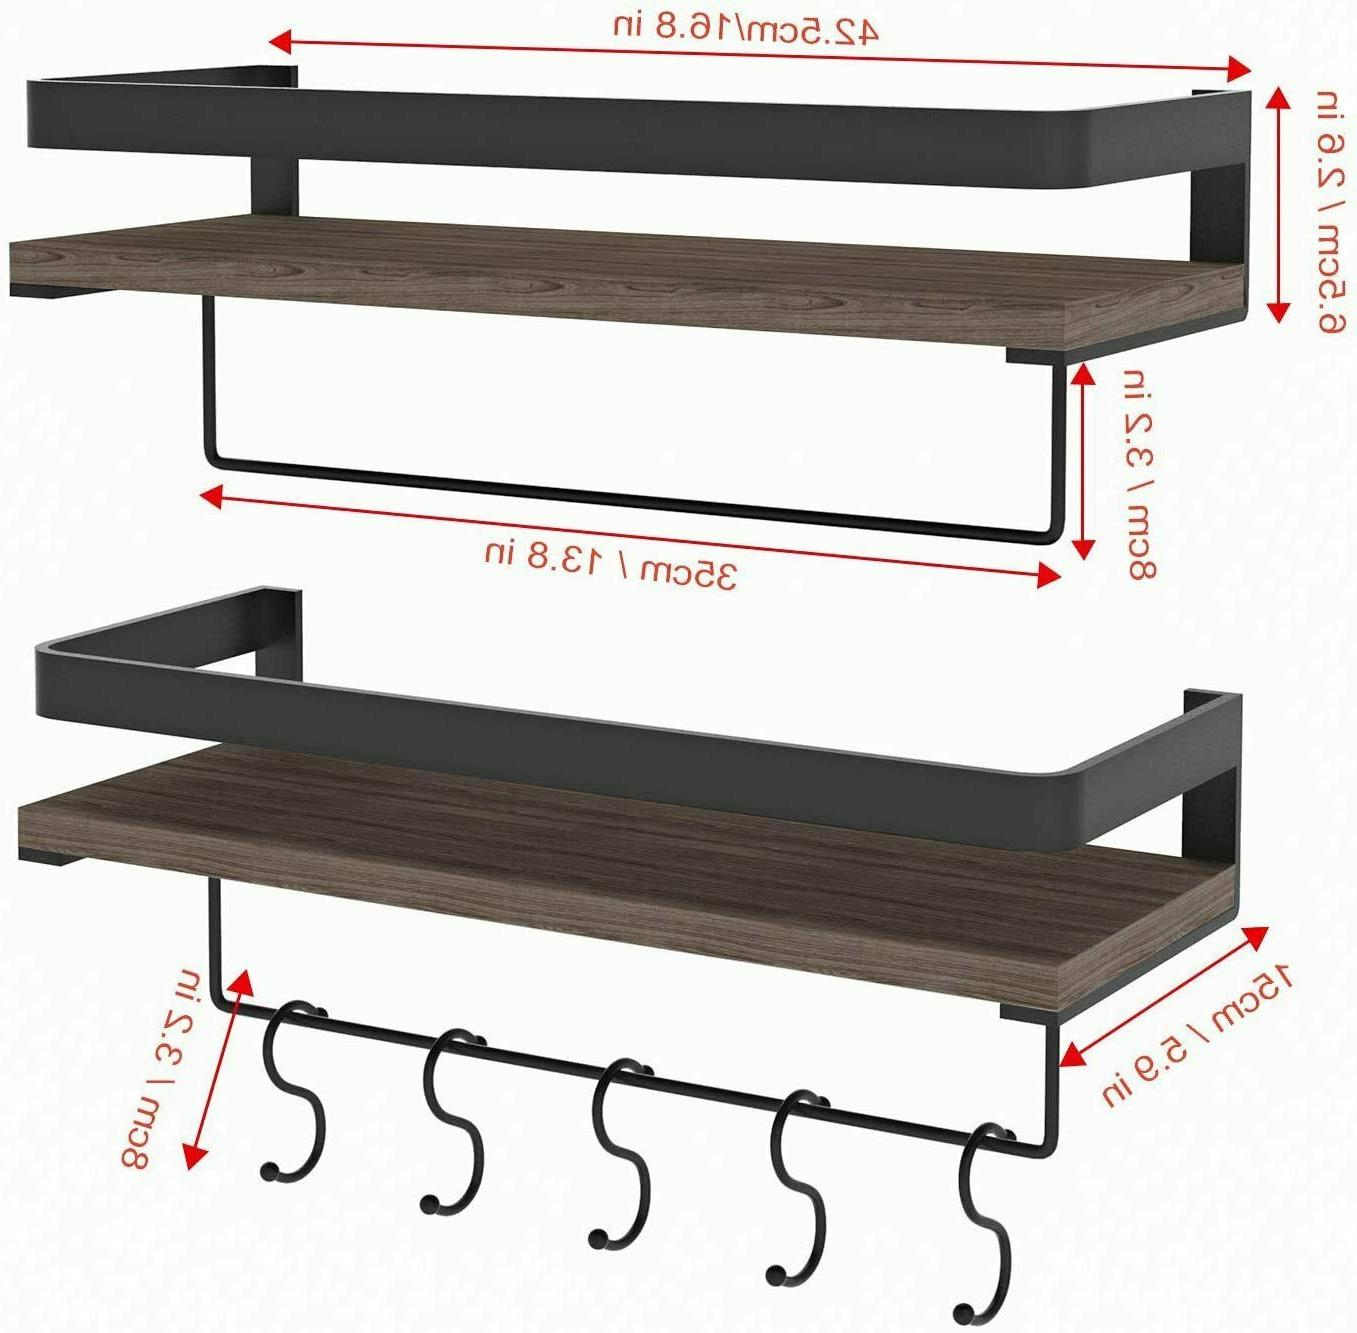 16.5inch Shelves Mounted with Rail Towel Bar